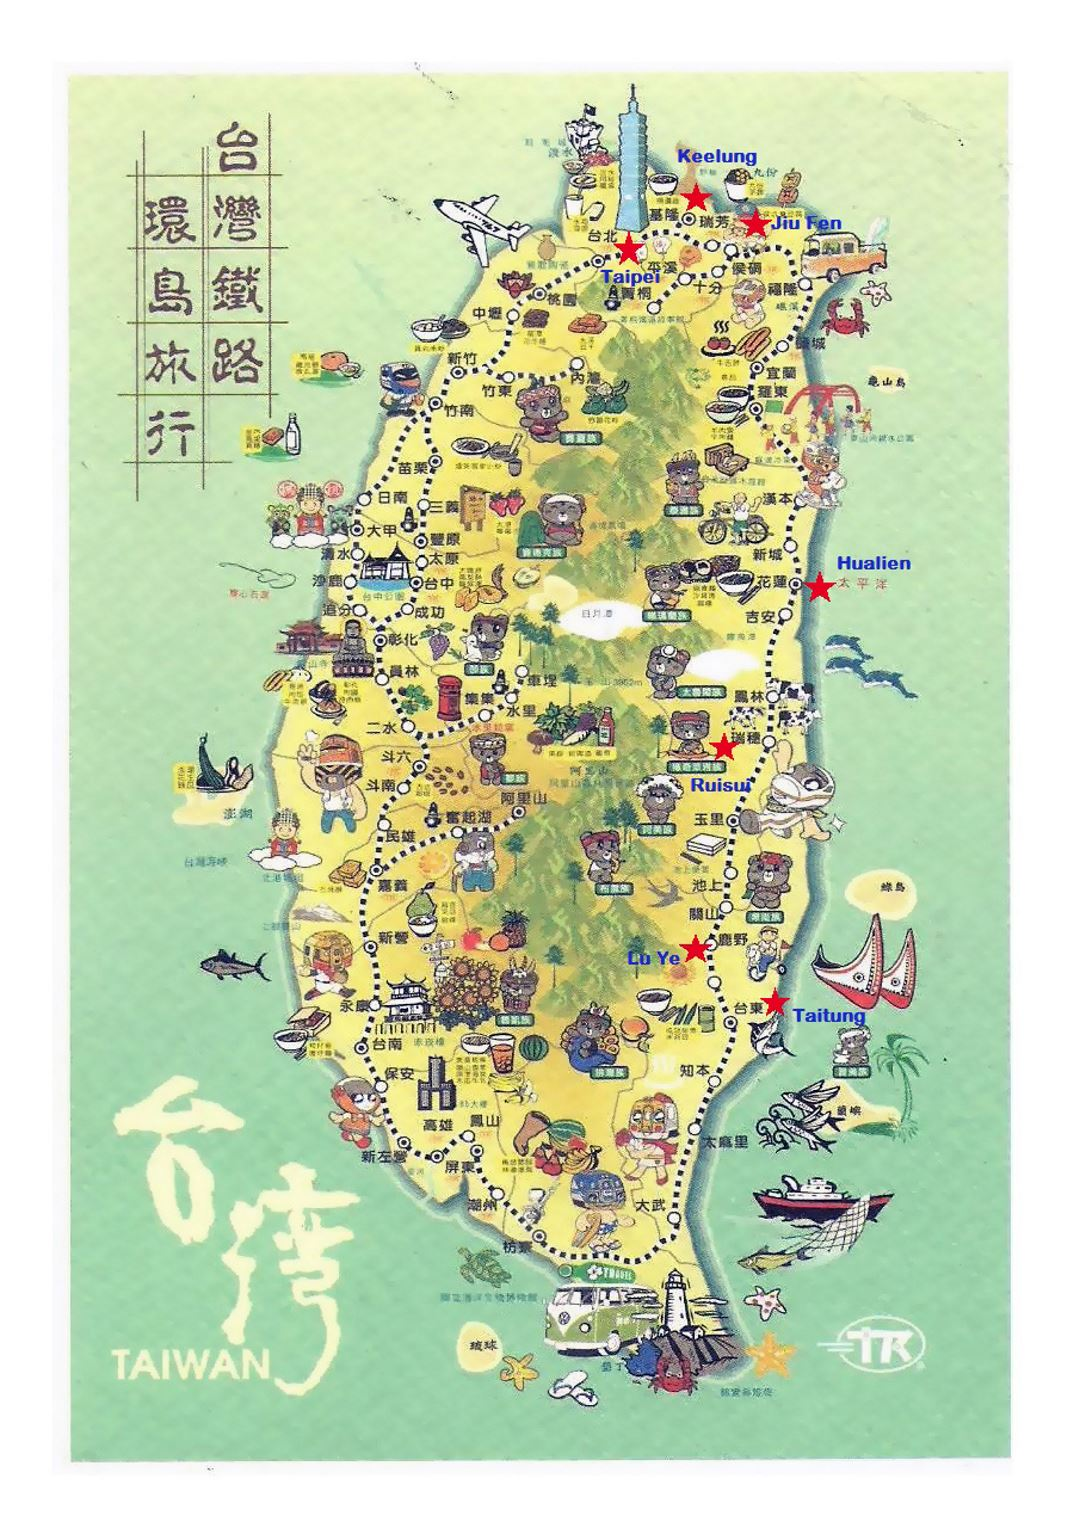 Tourist illustrated map of Taiwan